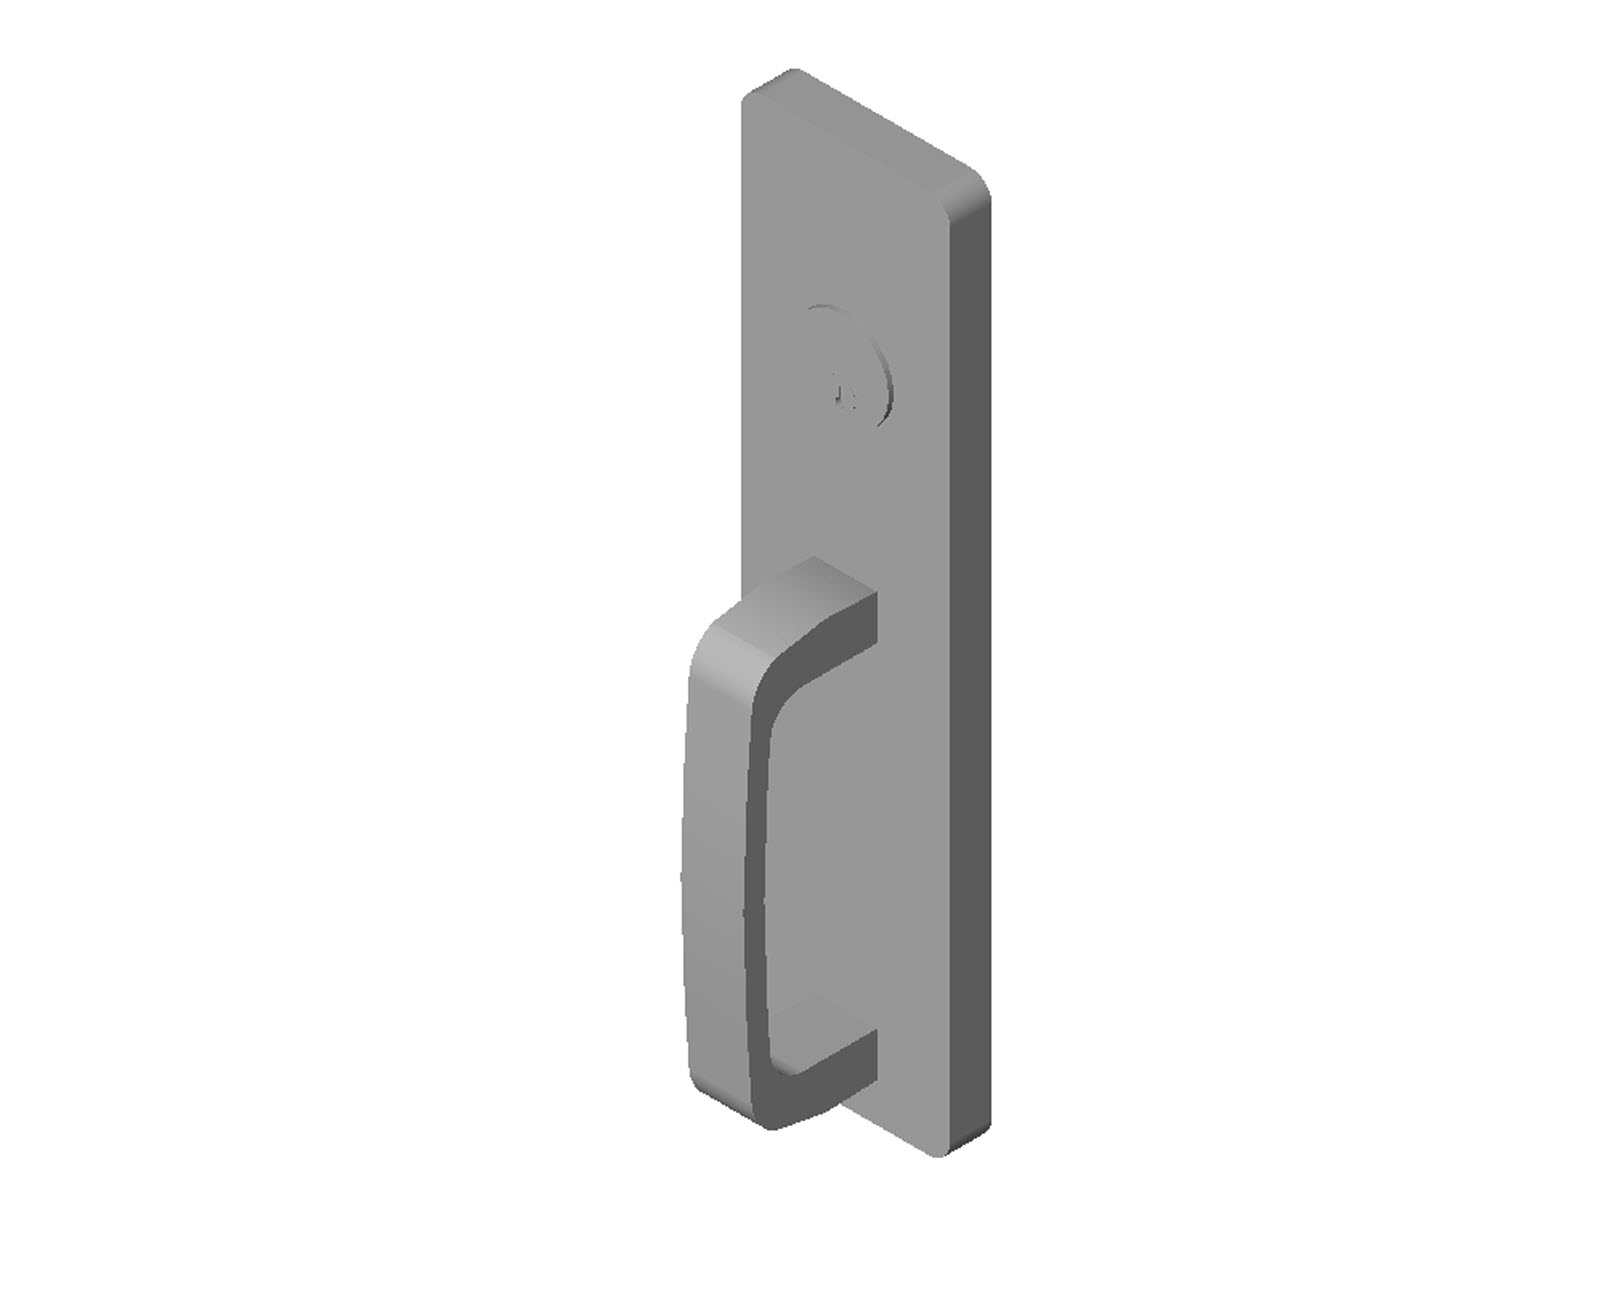 Doors and Hardware Door Hardware Exit Devices PDQ - 4200 Series - 429 - GPG  sc 1 st  BIM Objects / Families & BIM Objects / Families